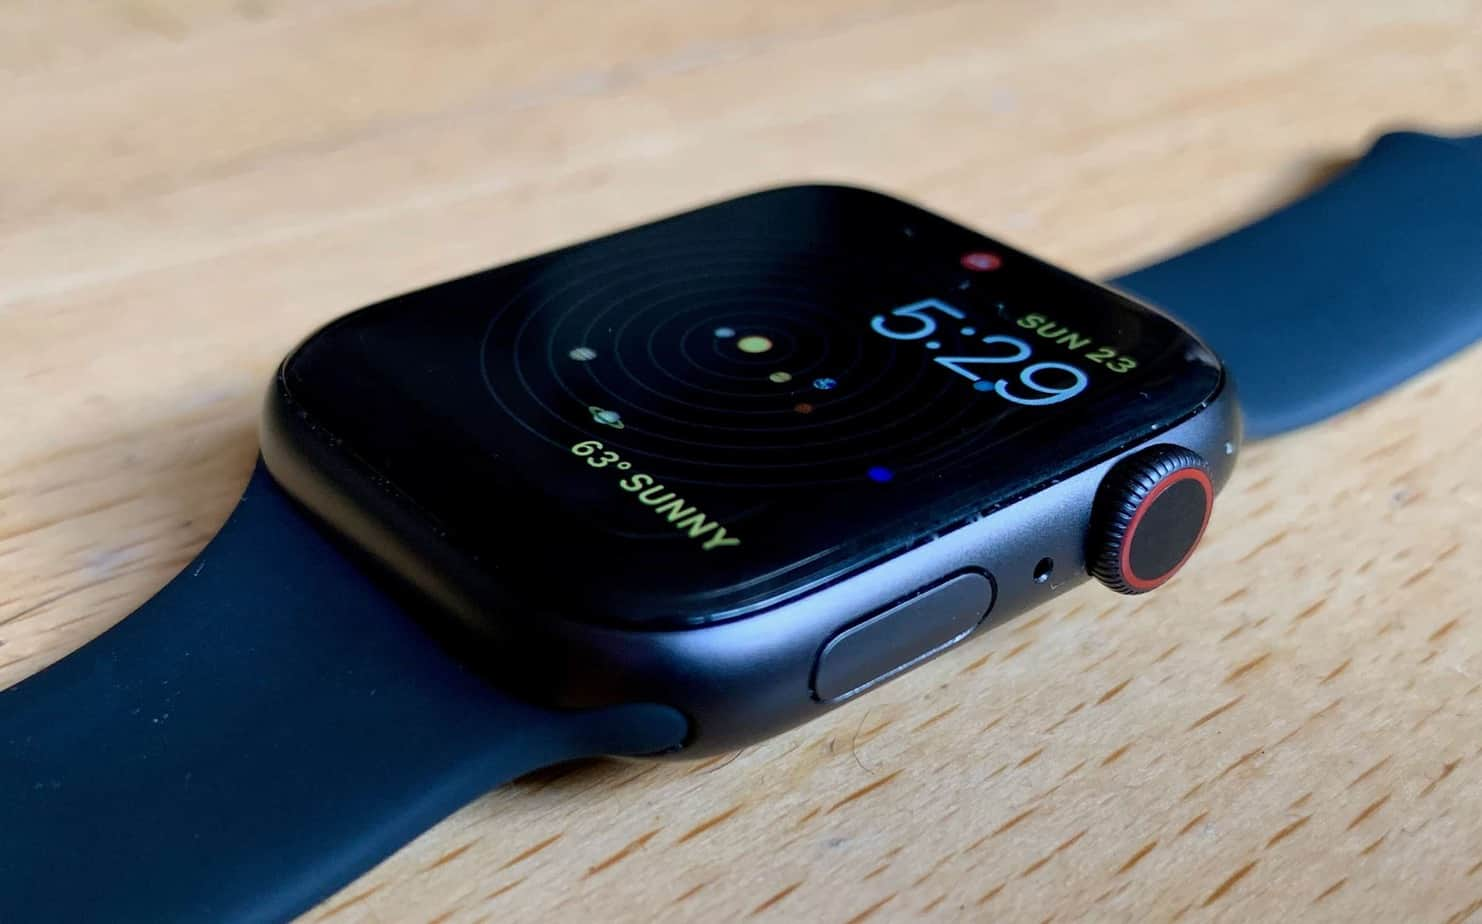 Apple Watch Laid ON Table